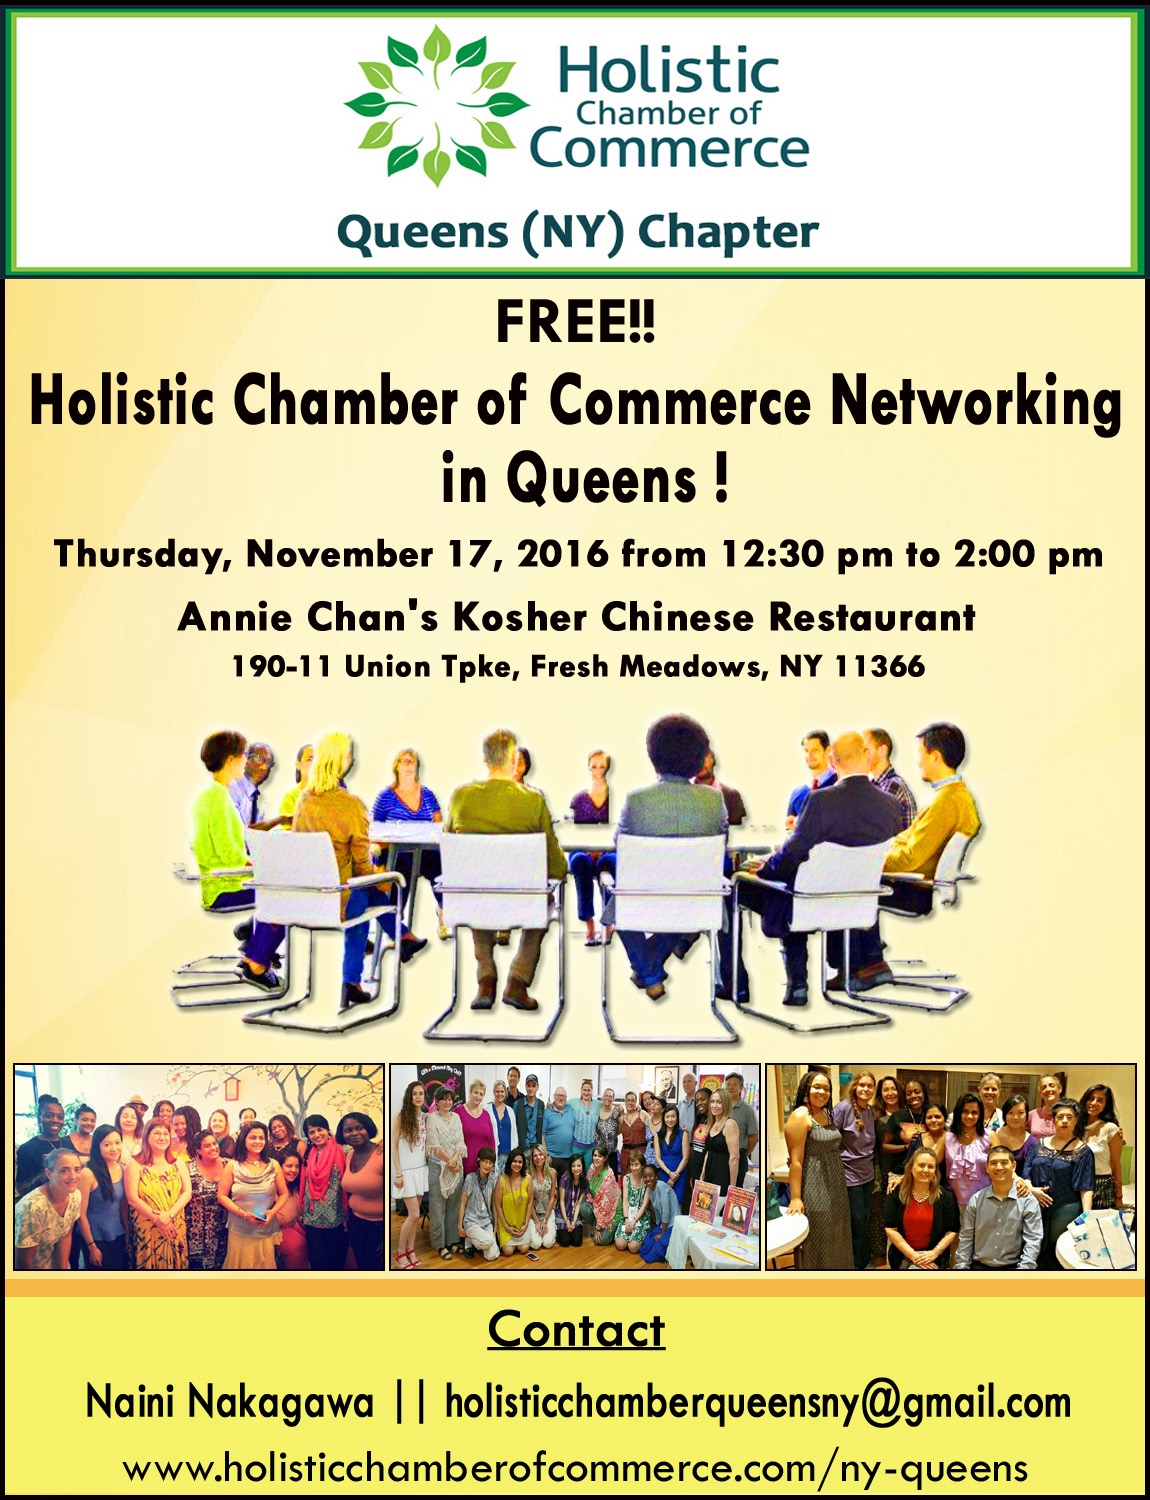 FREE!! Holistic Chamber of Commerce Networking in Queens!